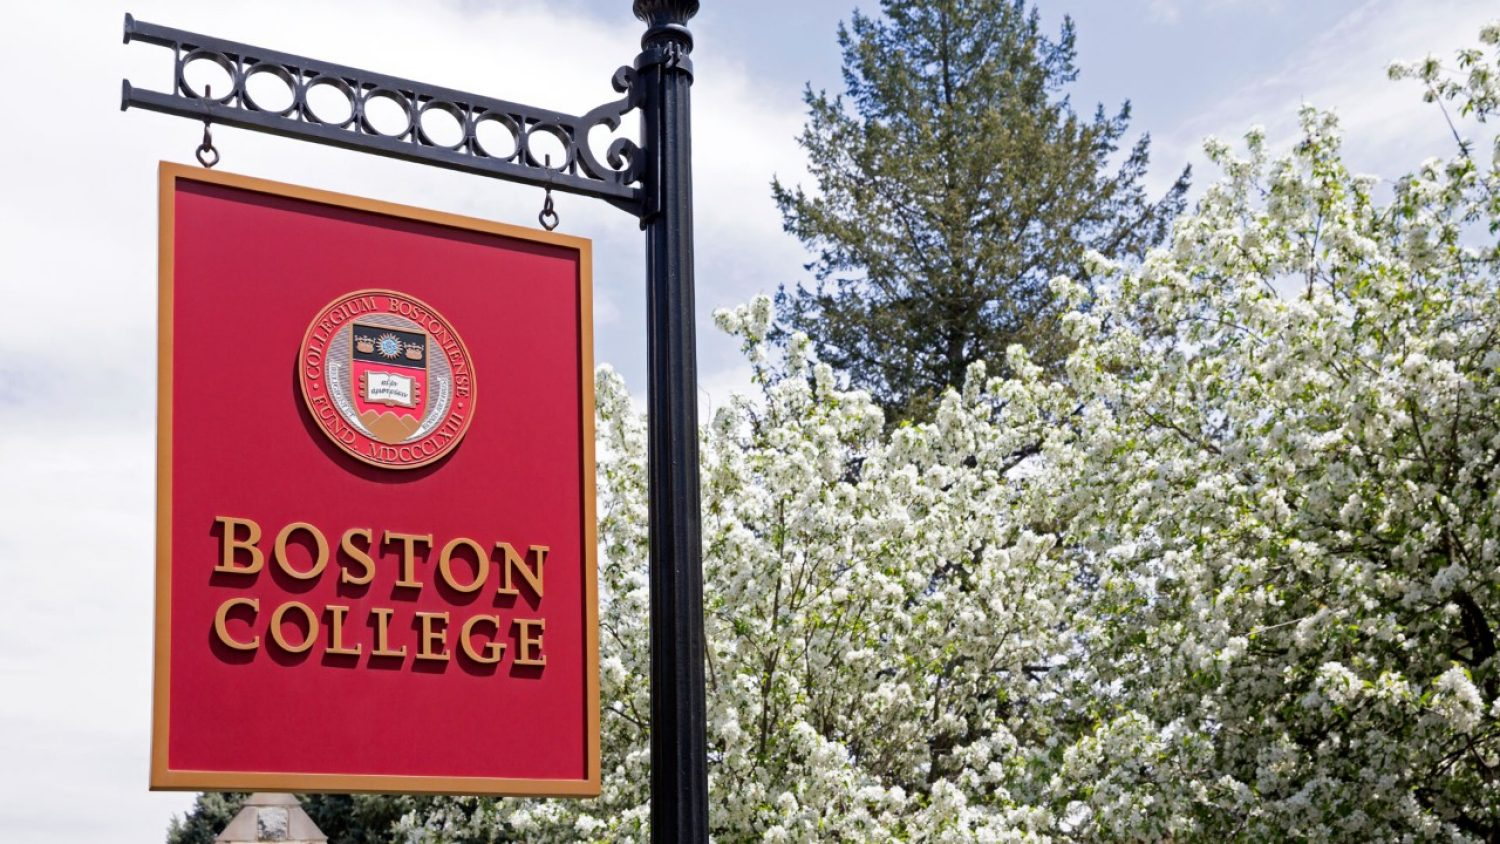 Boston College sign at Main Gate